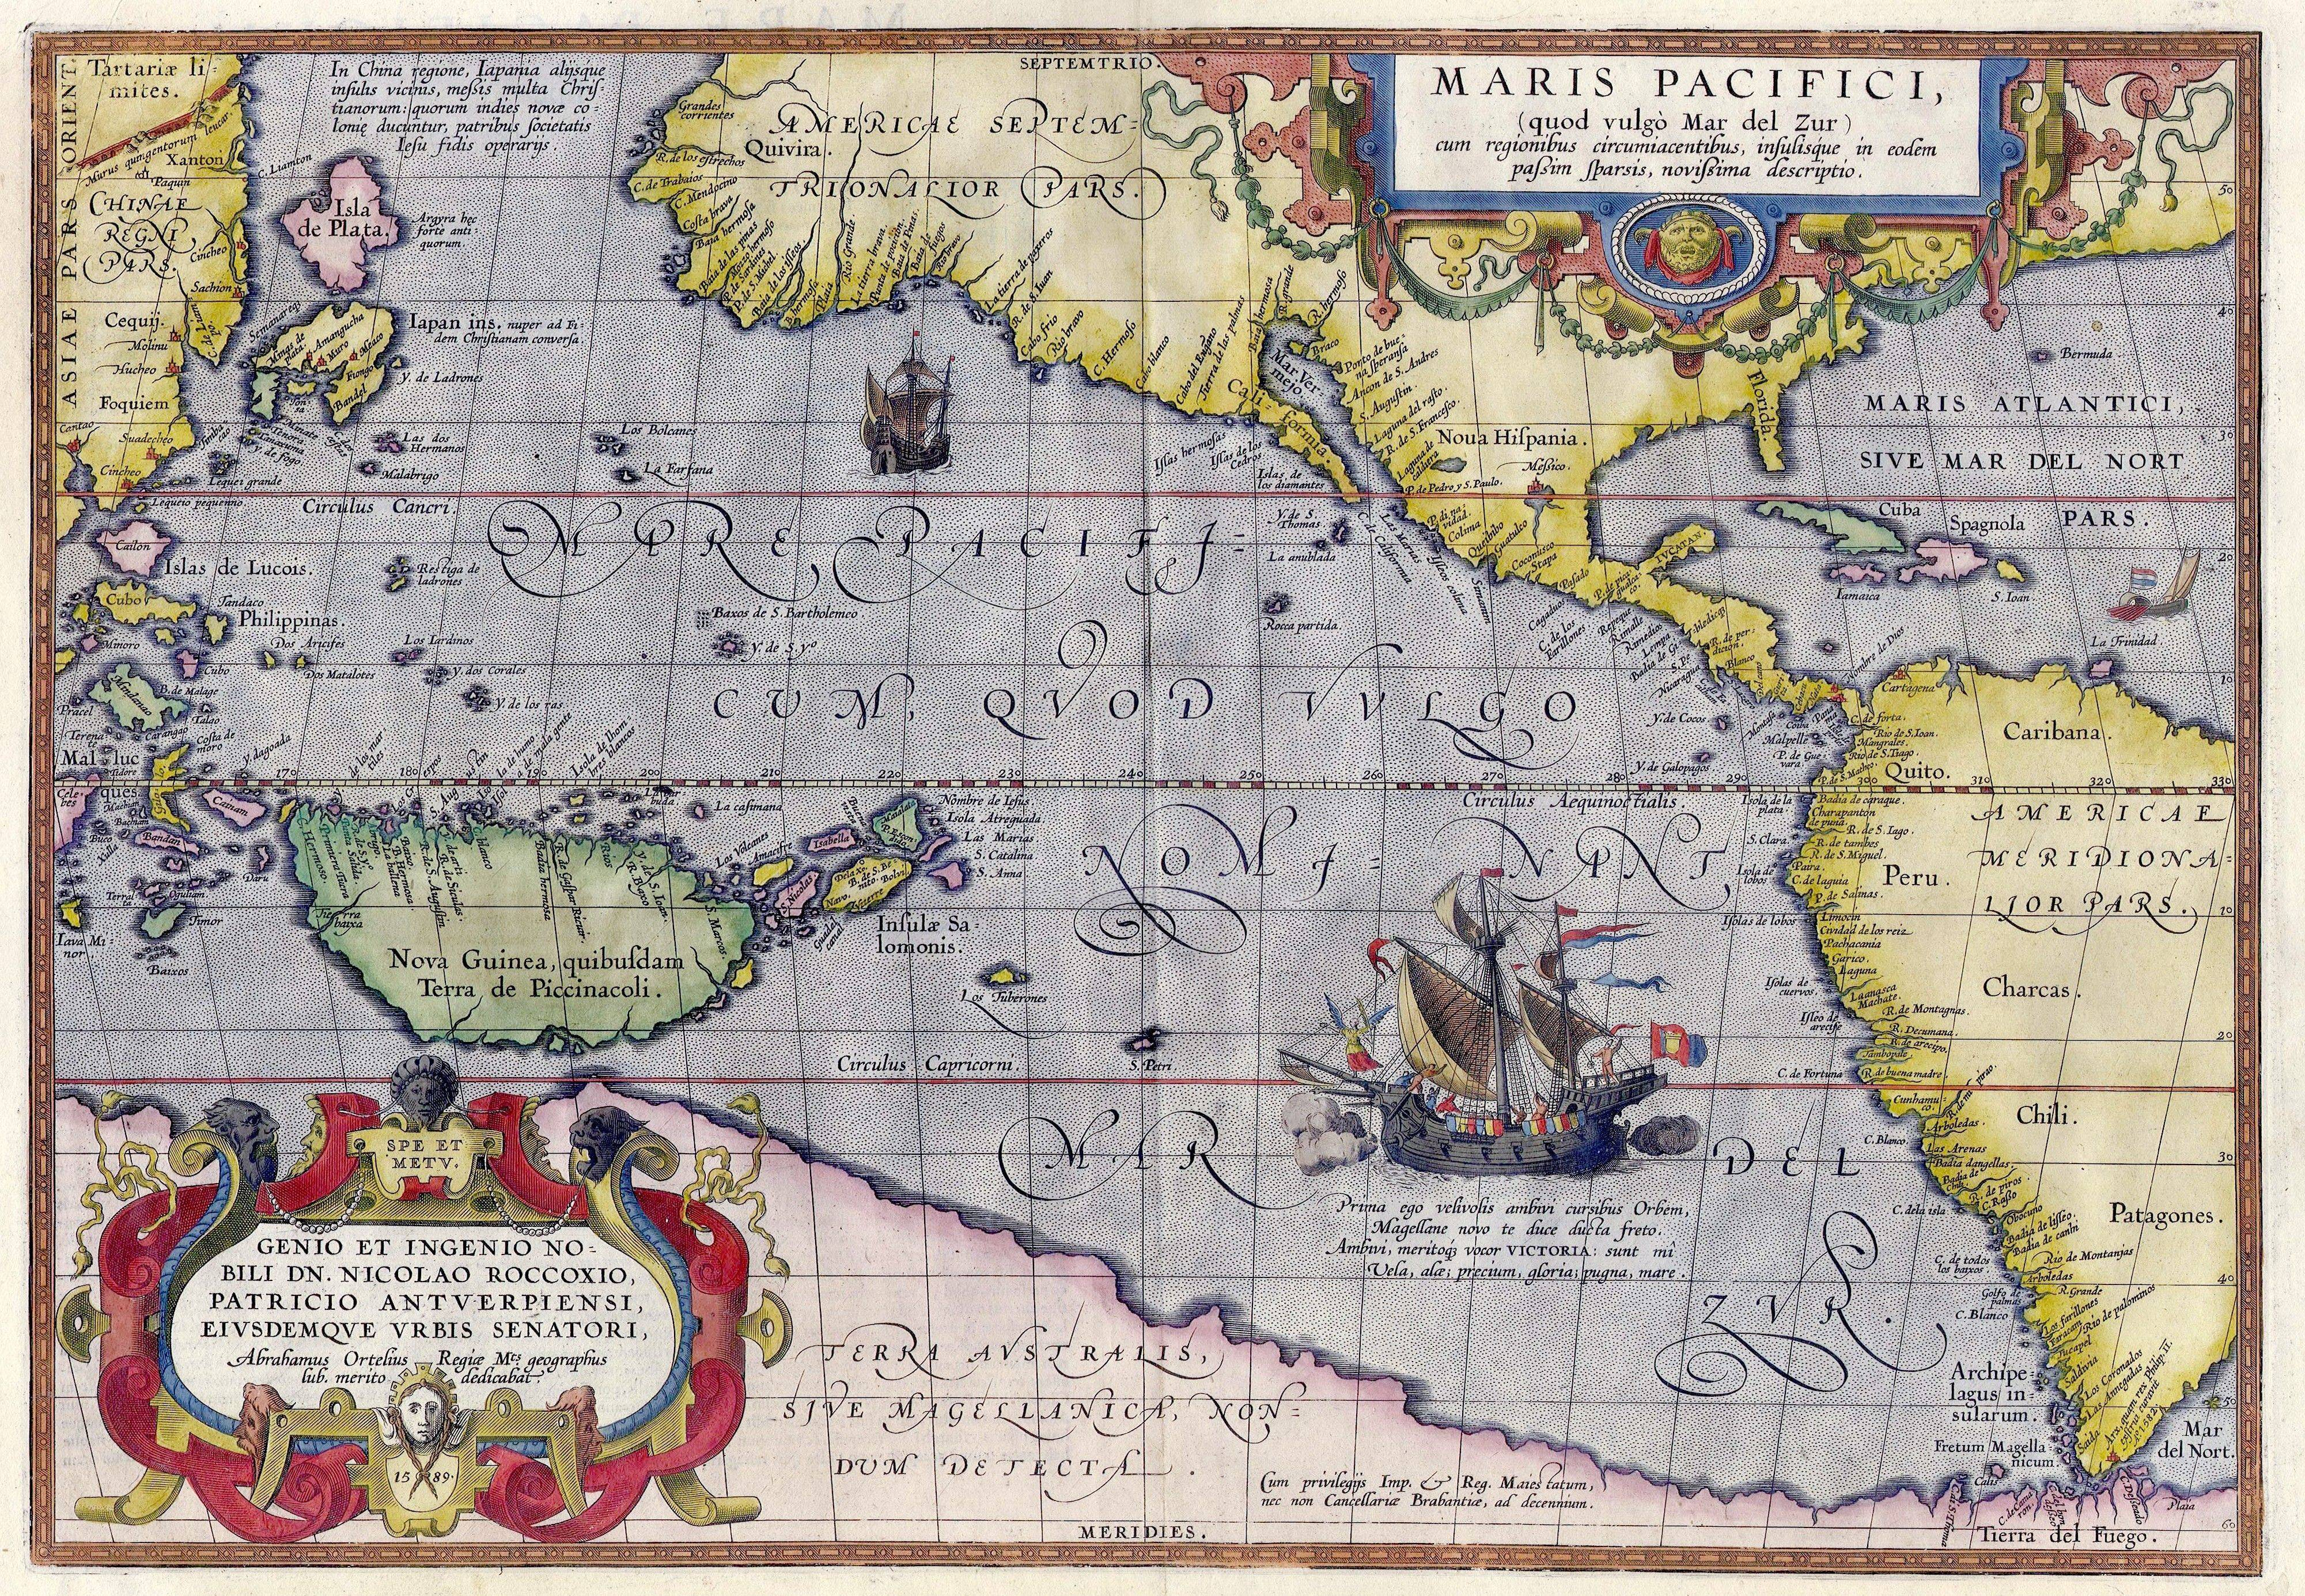 Pacific Ocean   Wikipedia Maris Pacifici by Ortelius  1589   One of the first printed maps to show the  Pacific Ocean